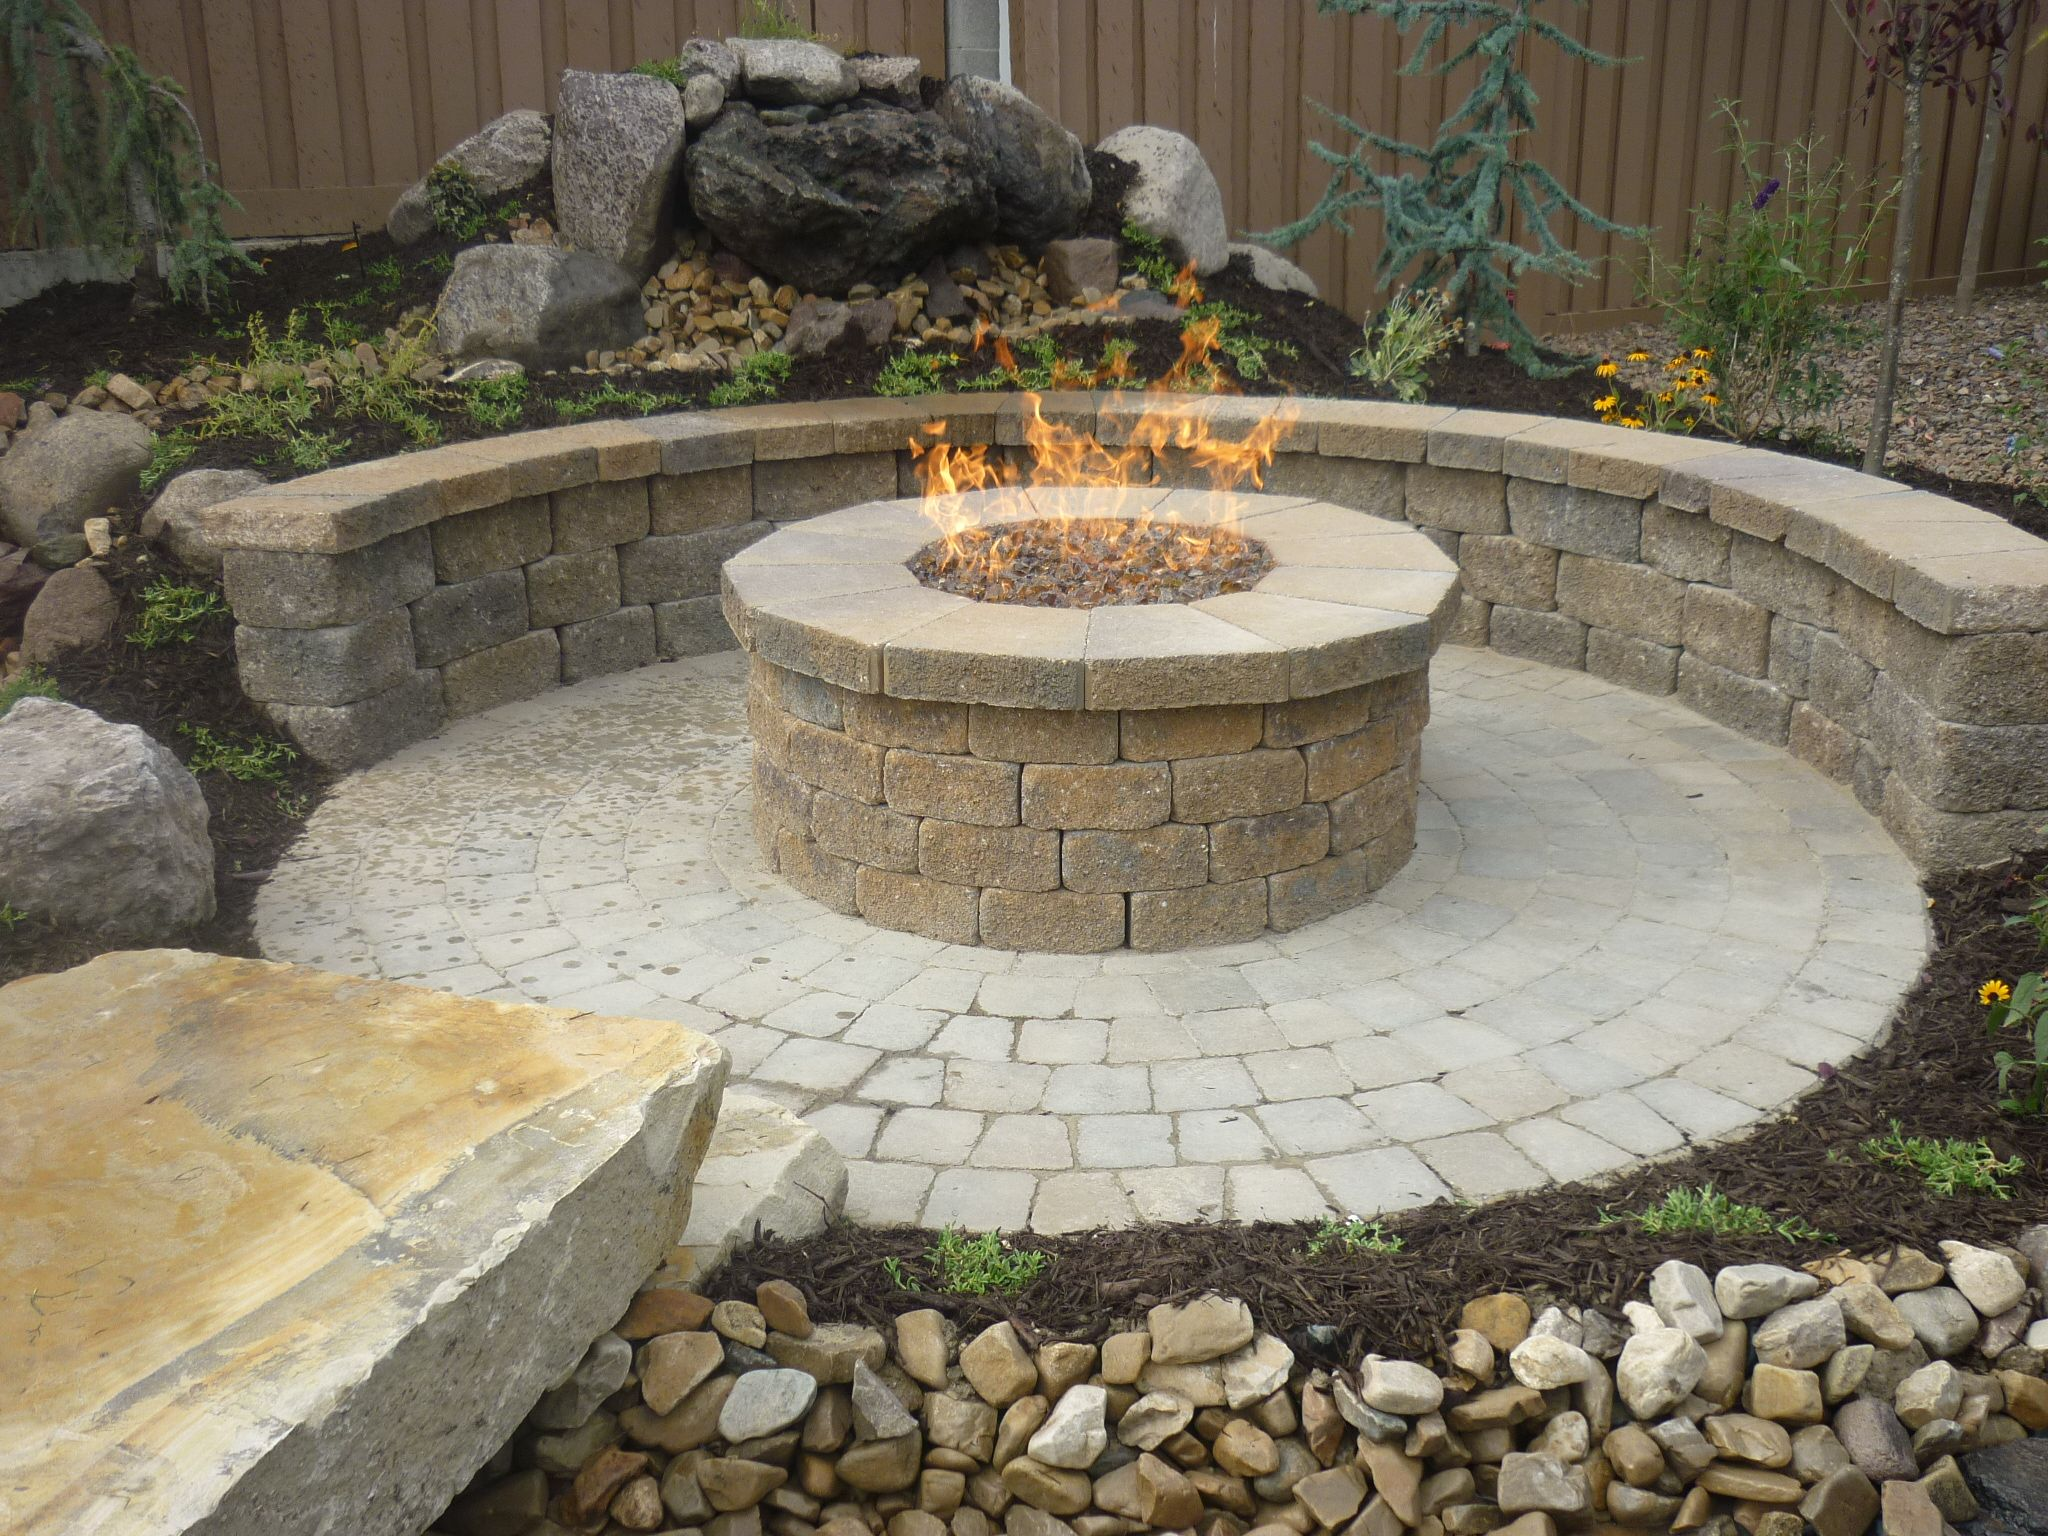 1afcae51f91bb3d7e4d612c5d4f562b6 Top Result 50 Lovely Outdoor Gas Fire Bowl